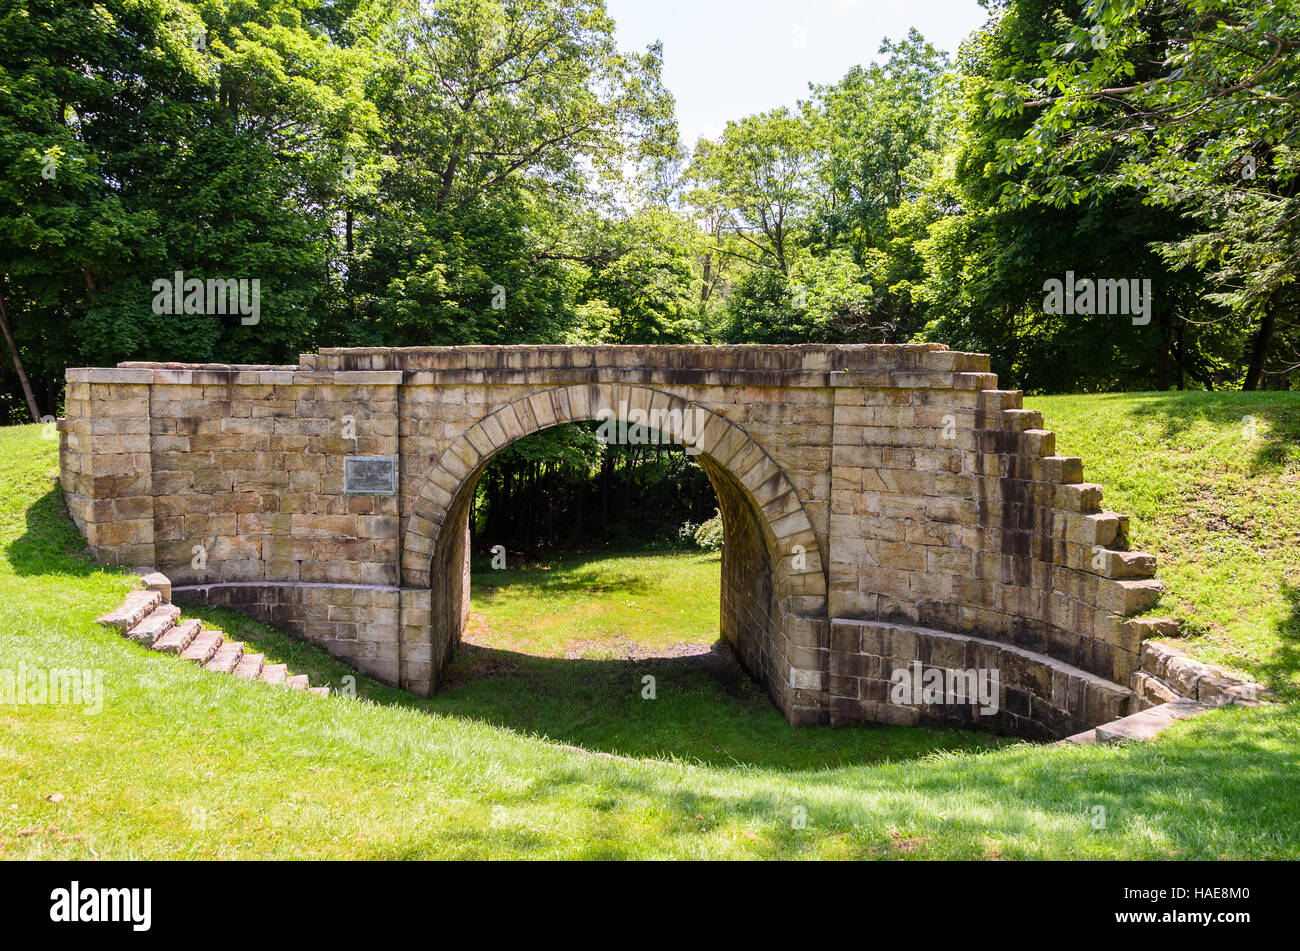 Allegheny Portage Railroad National Historic Site - Stock Image